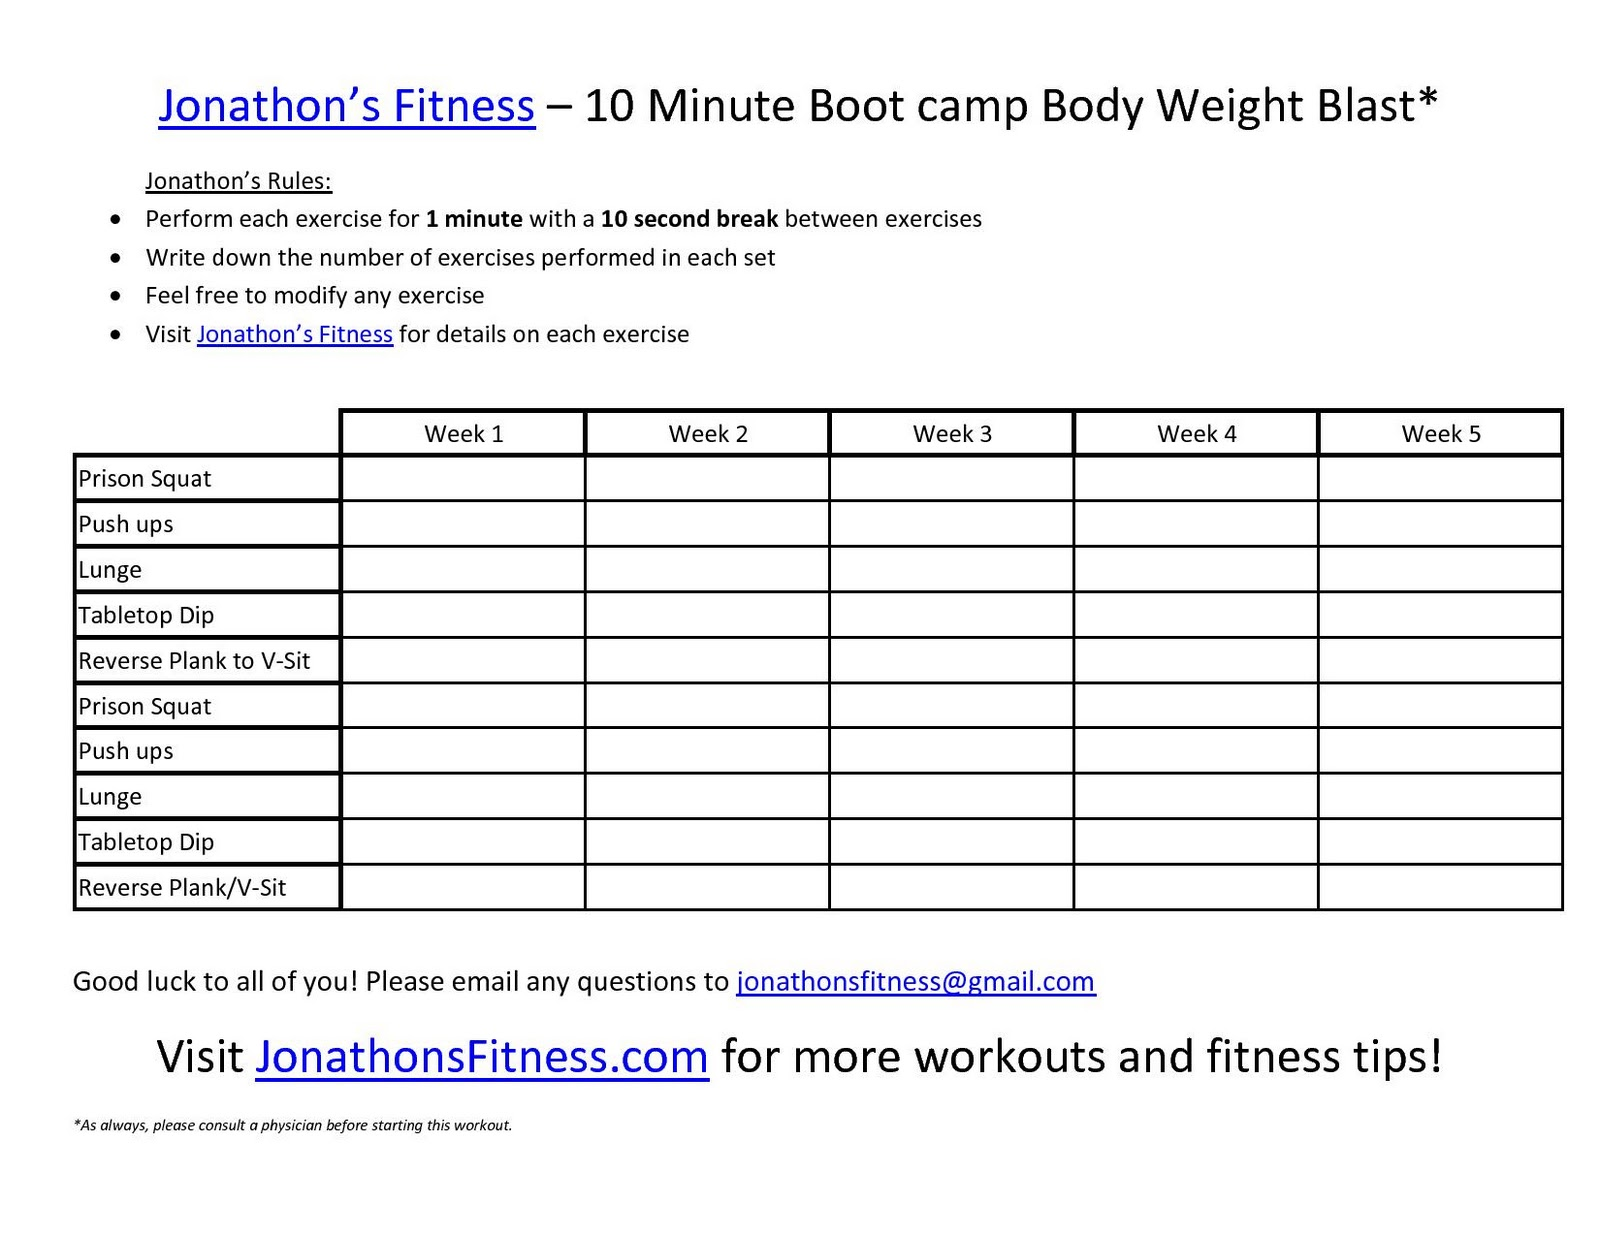 Jonathons Fitness Site Printable Workout Routine